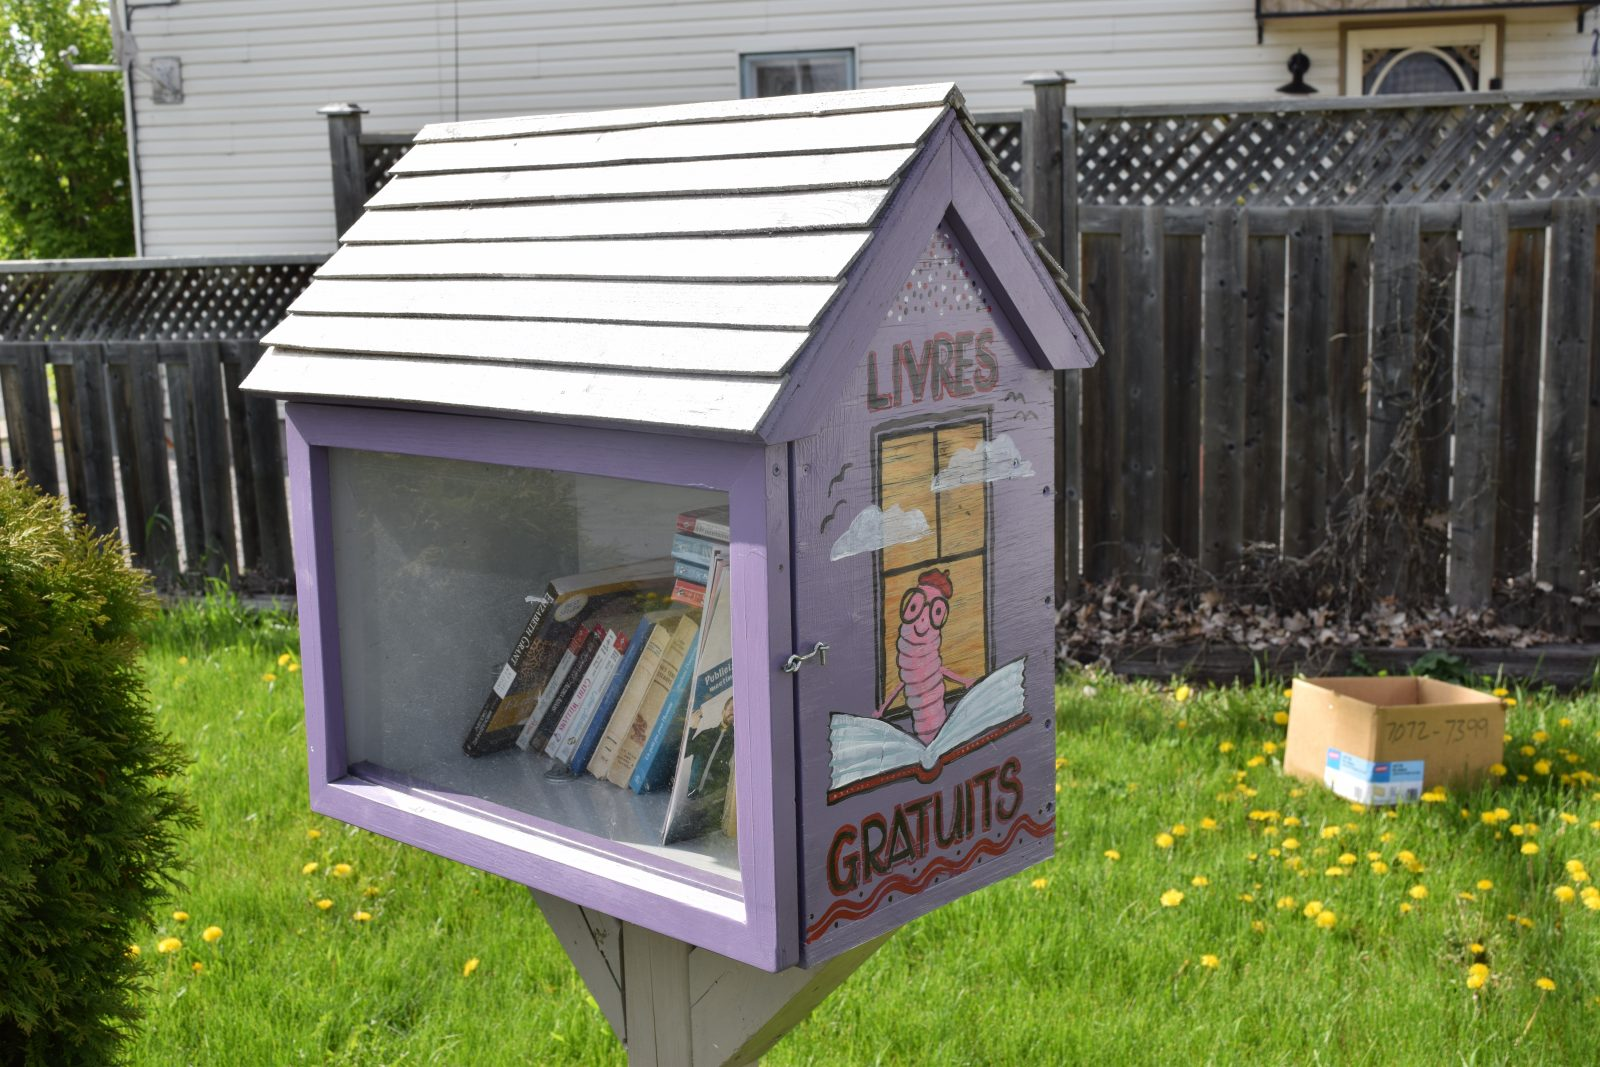 Towns vie for little free library